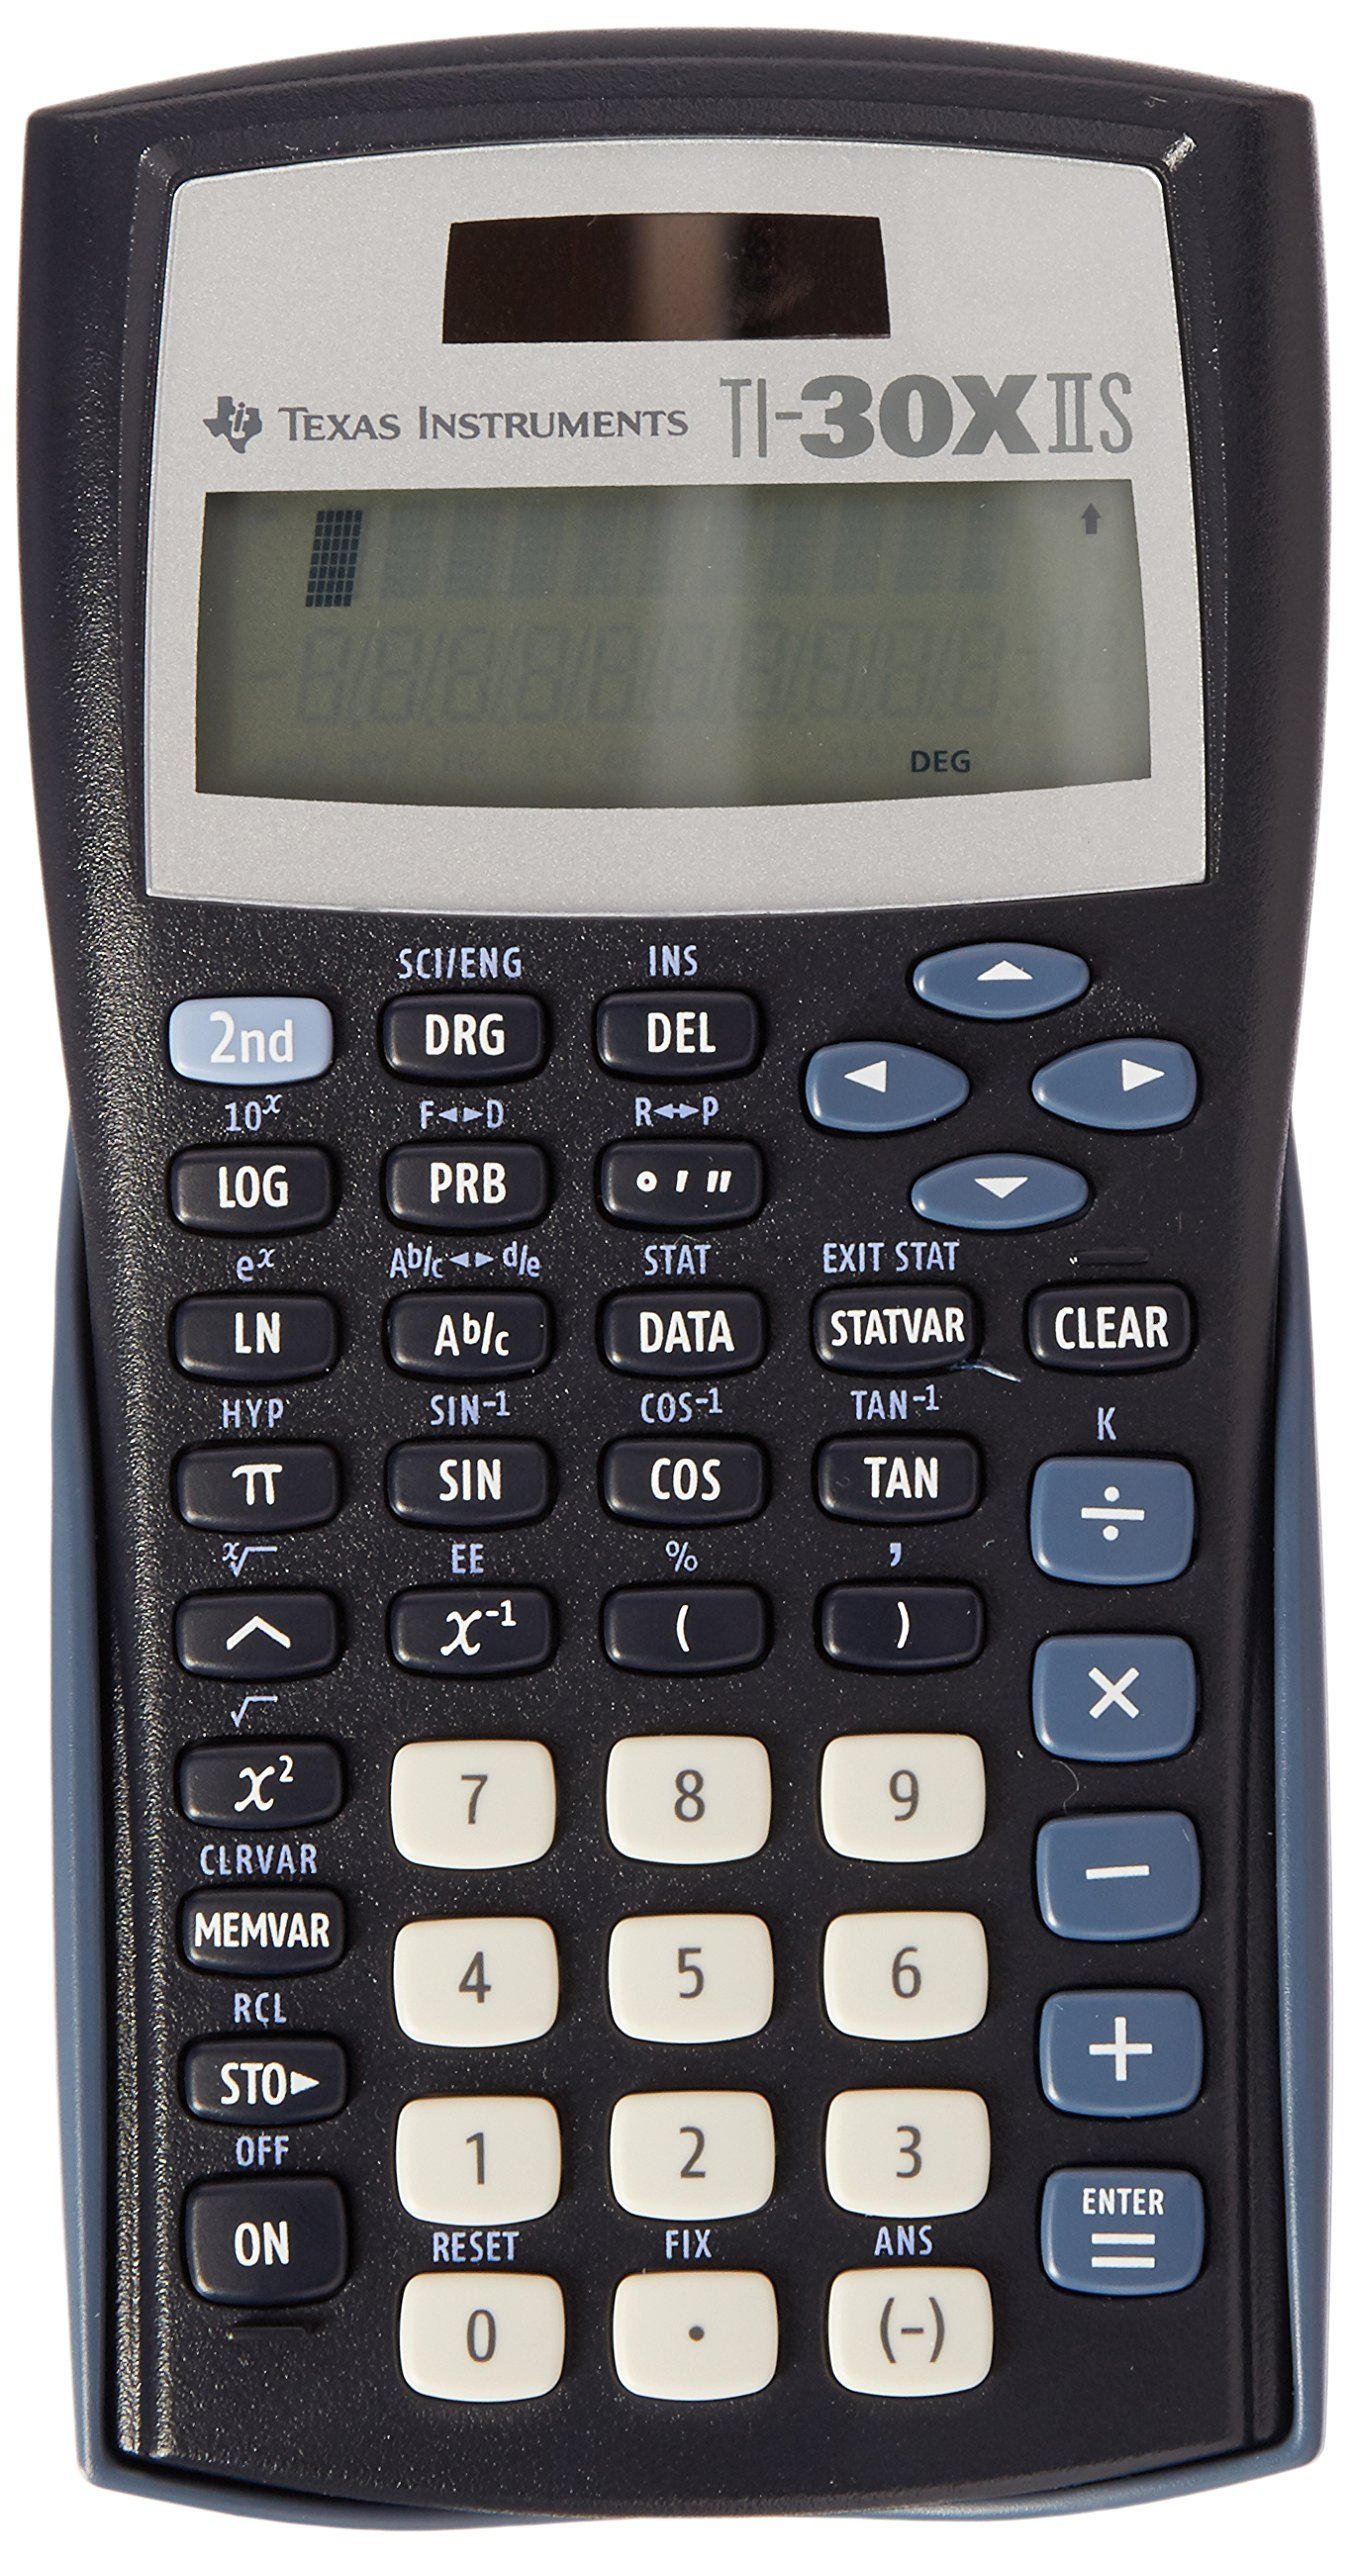 Texas Instruments 30XIIS/TKT Calculator Teachers Kit by Texas Instruments